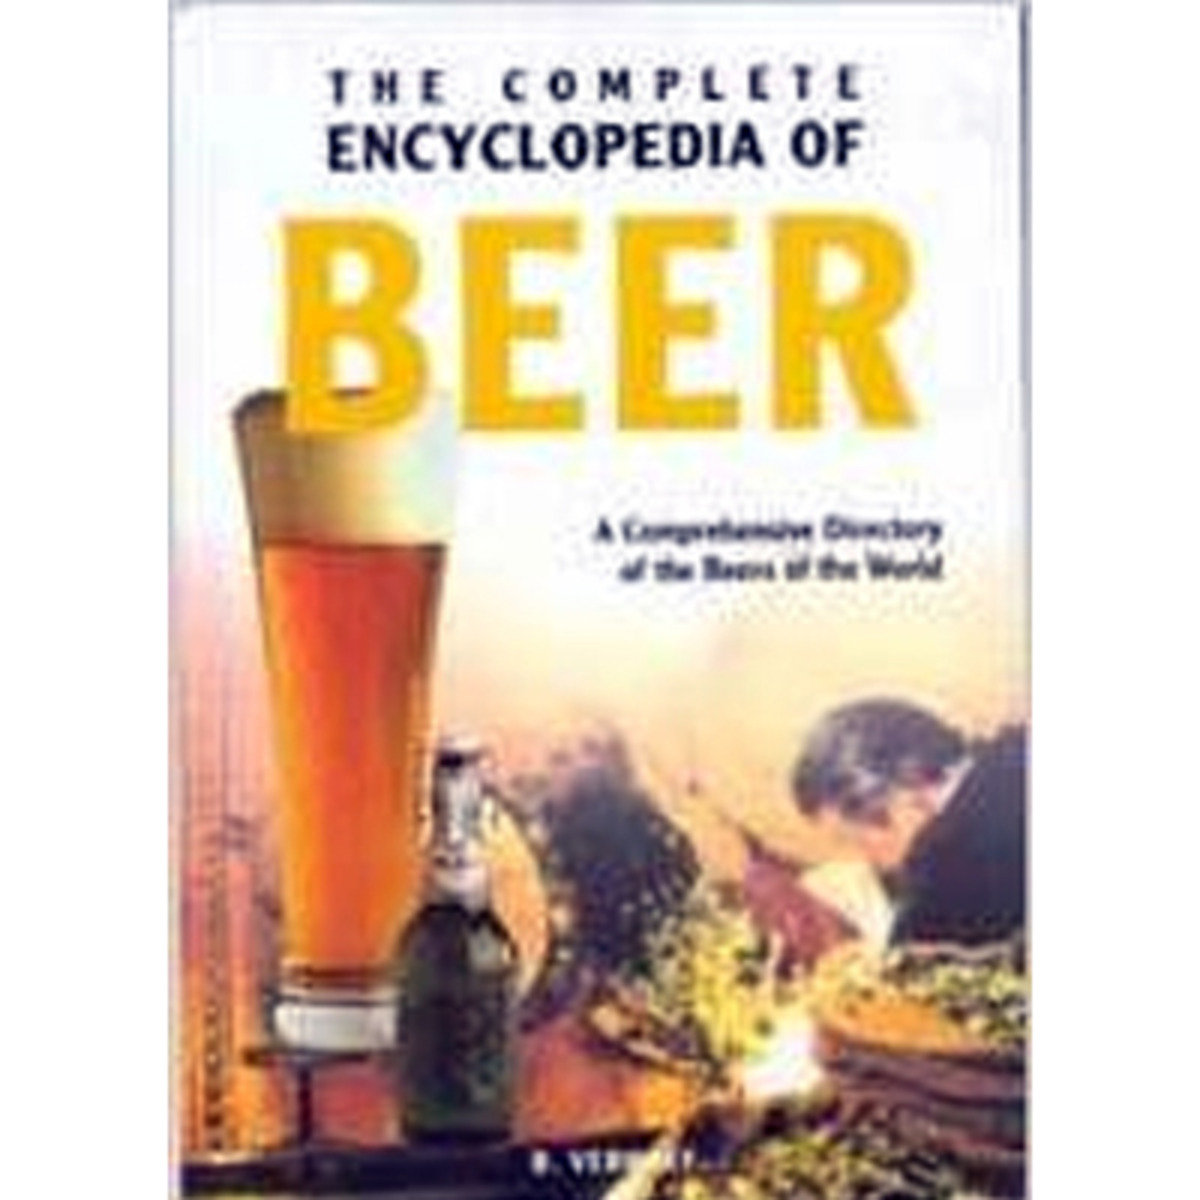 ENCYCLOPEDIA OF BEERS 9789036615235